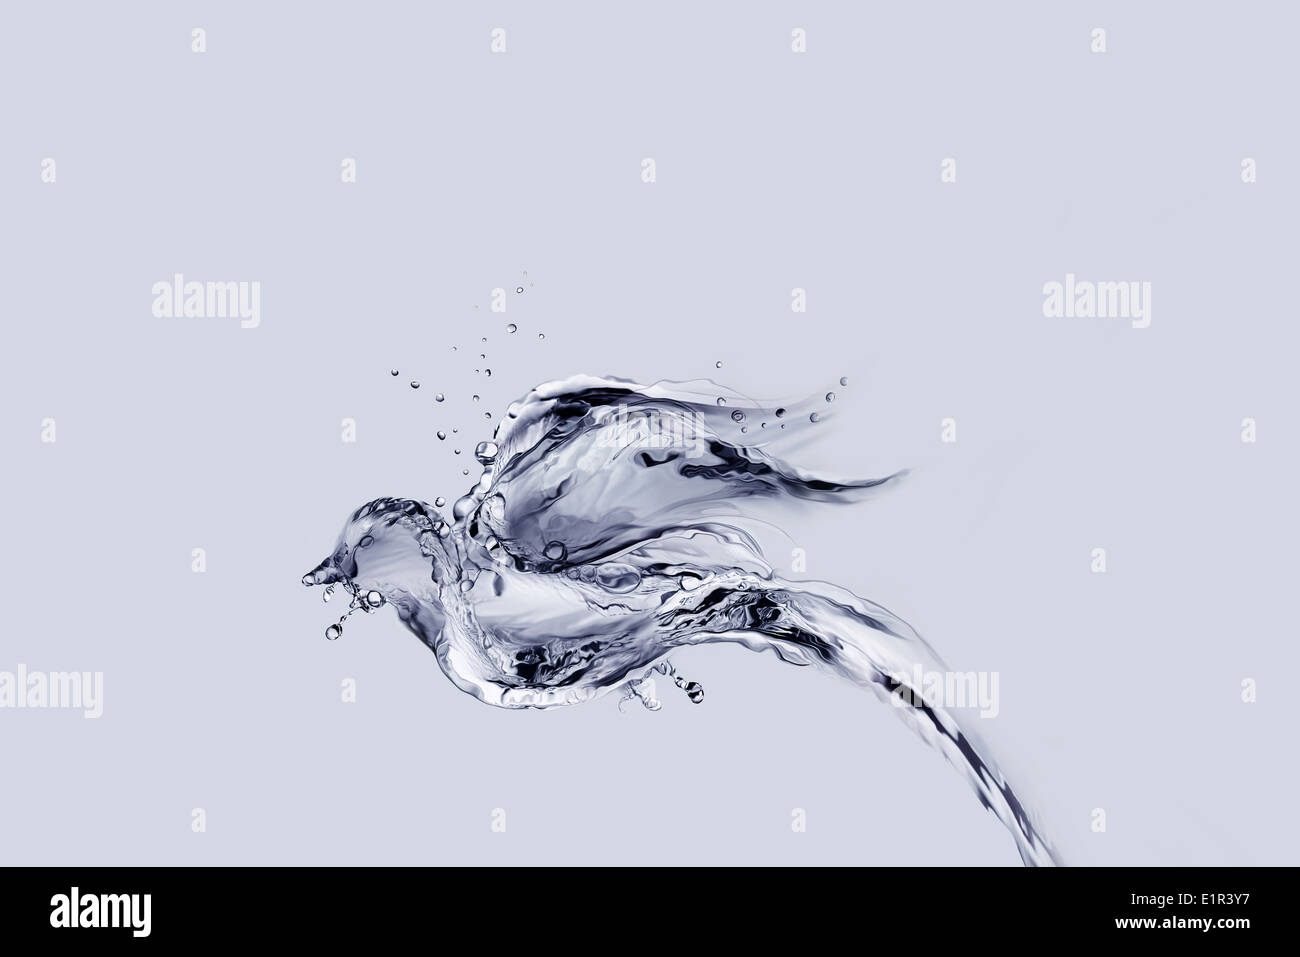 A bird made of water flying away. - Stock Image